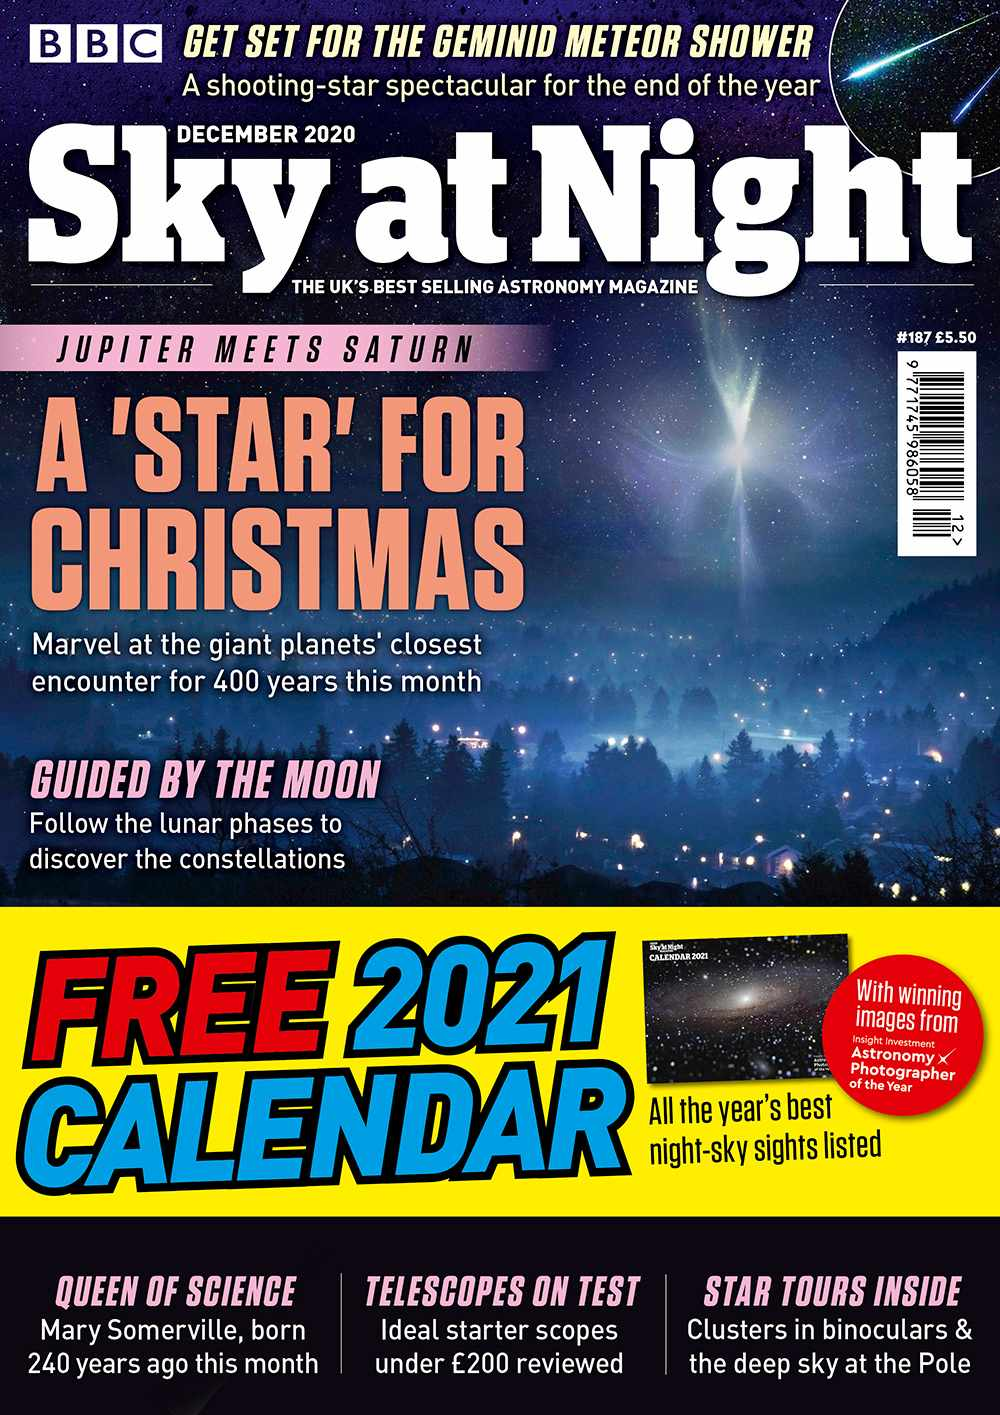 BBC Sky at Night Magazine December 2020 issue